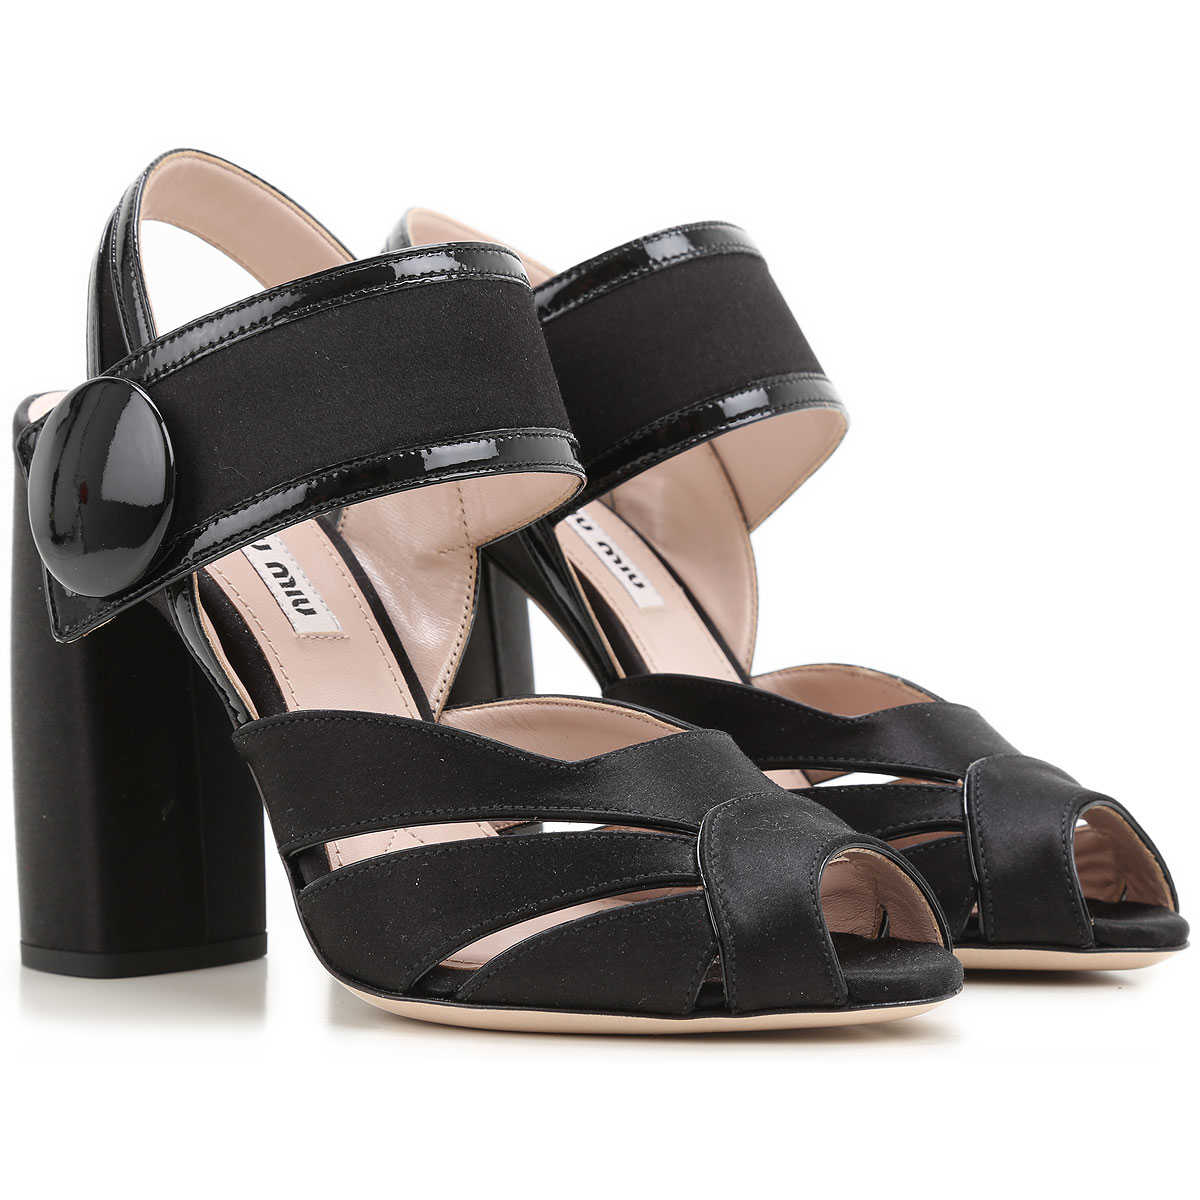 Miu Miu Womens Shoes On Sale in Outlet